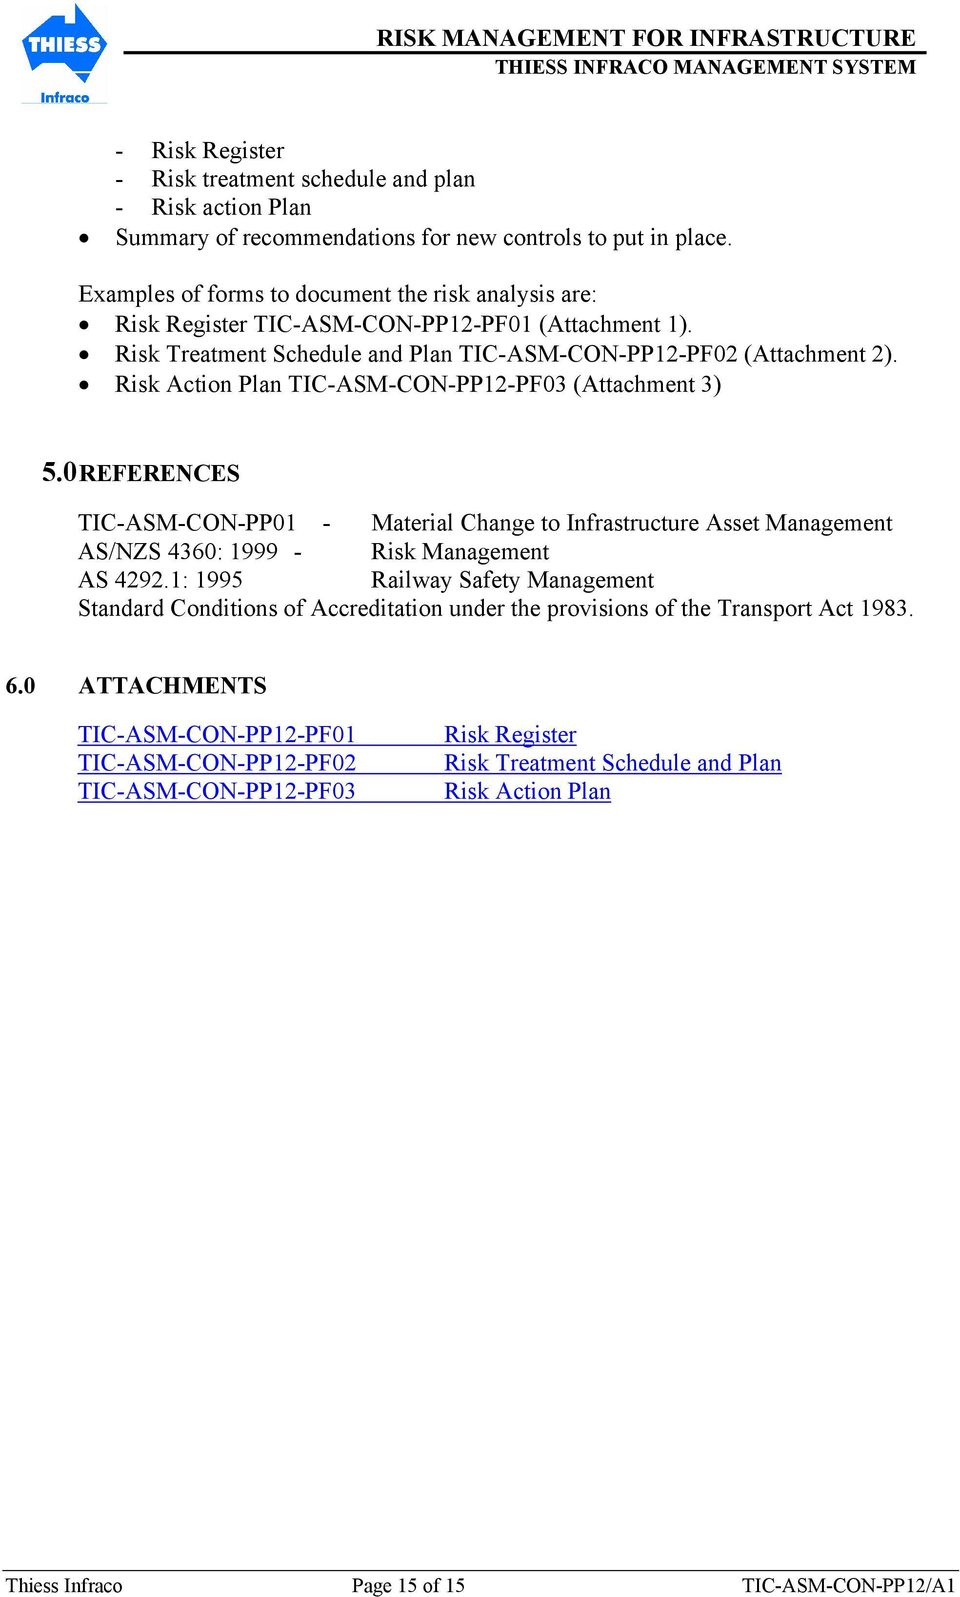 Risk Action Plan TIC-ASM-CON-PP12-PF03 (Attachment 3) 5.0 REFERENCES TIC-ASM-CON-PP01 - Material Change to Infrastructure Asset Management AS/NZS 4360: 1999 - Risk Management AS 4292.